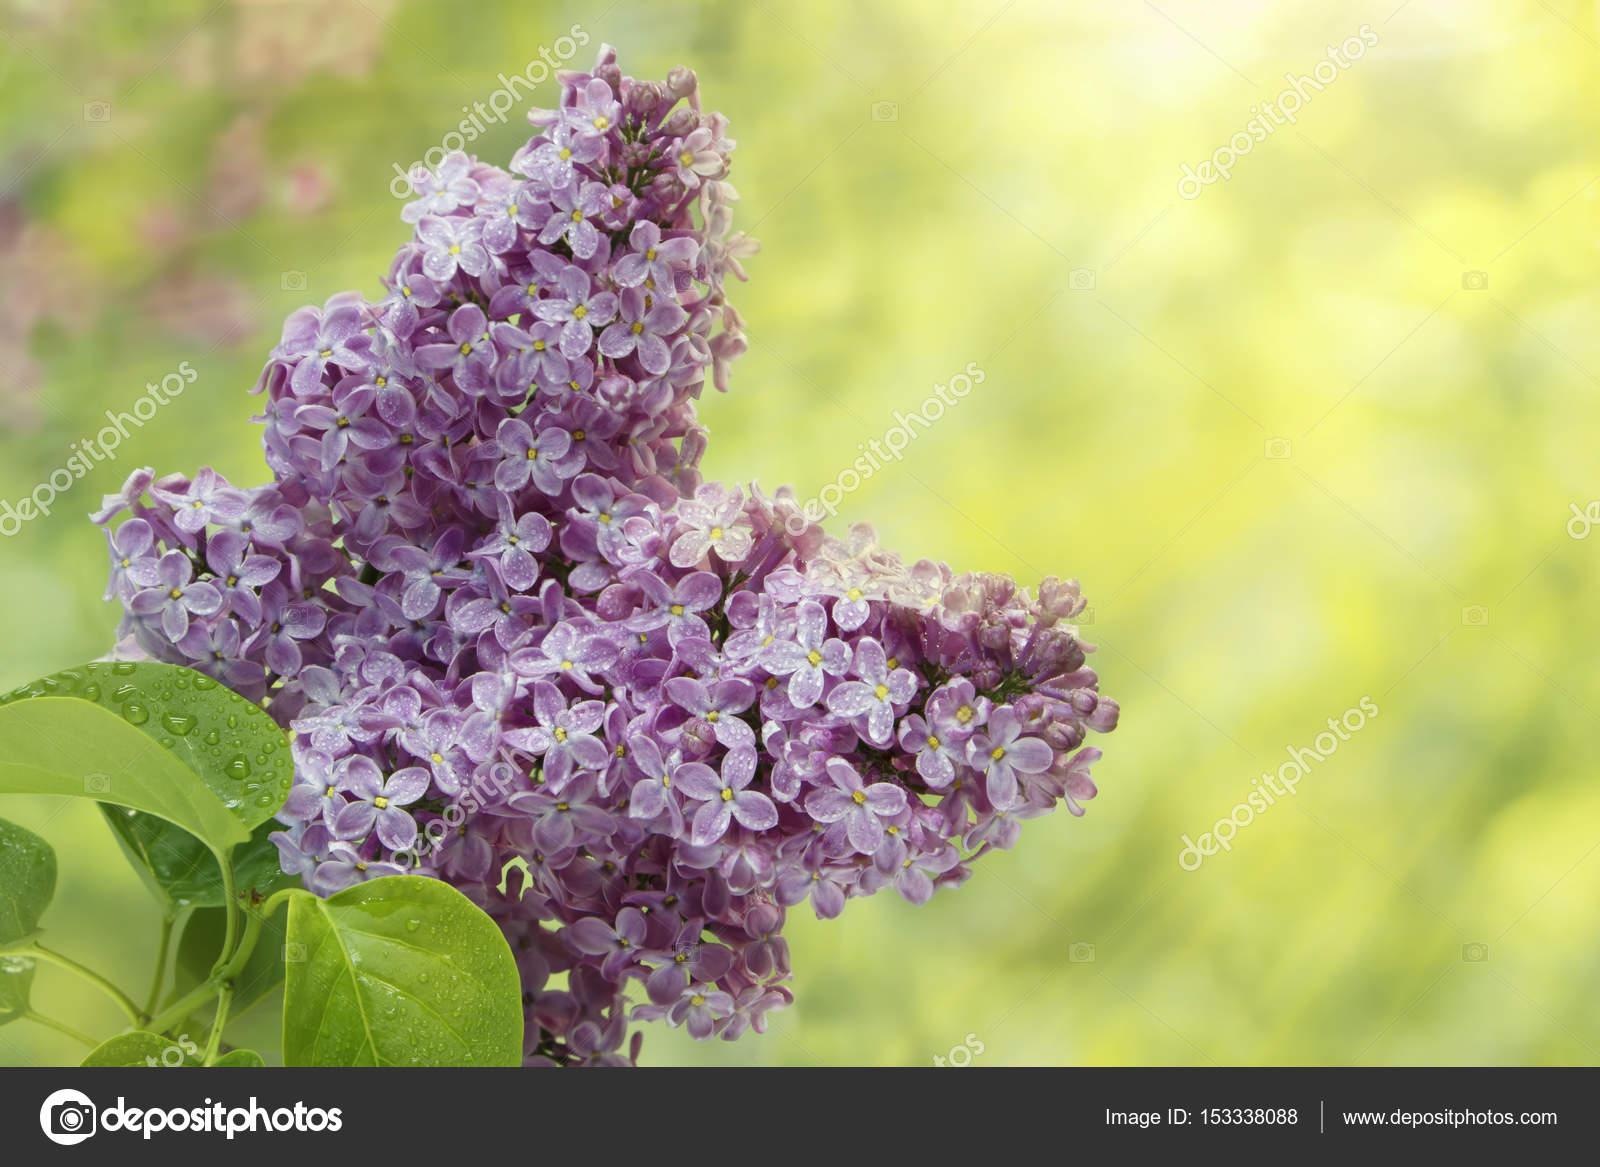 Branch Of Lilac Flowers With The Leaves And Raindrops In Sunlight